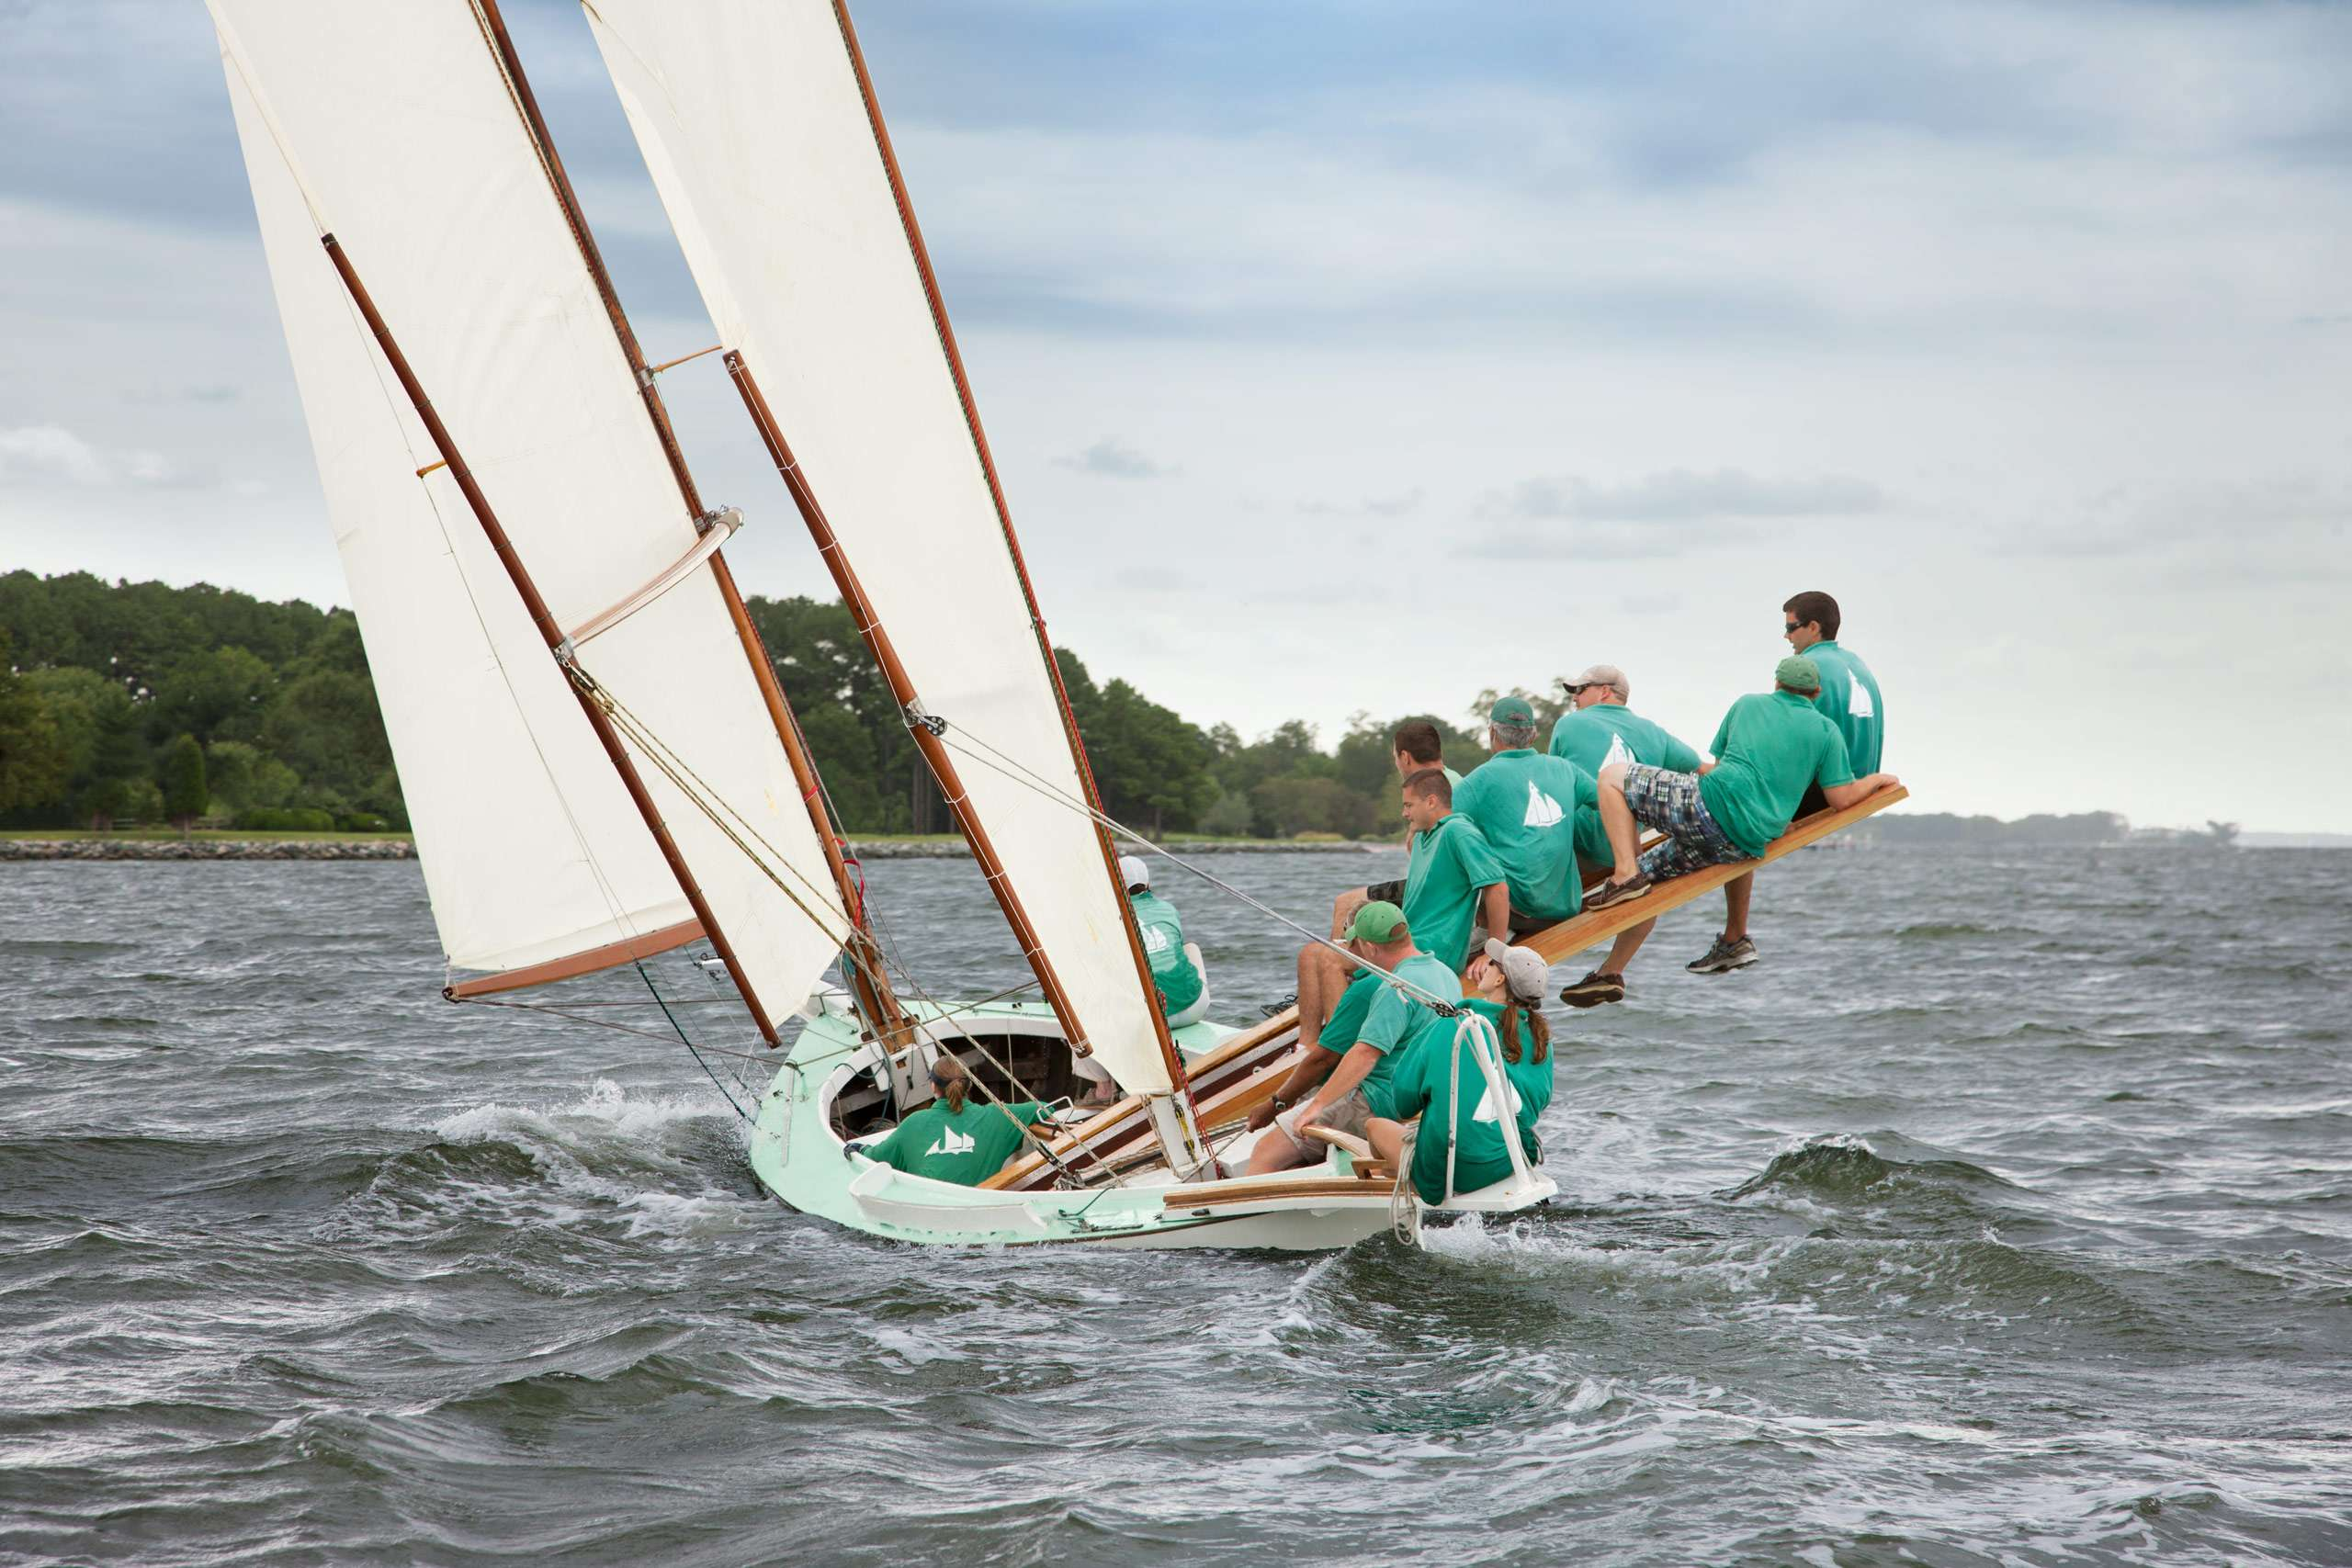 PORTFOLIO - Sailing - Log Canoes #29   PCG568